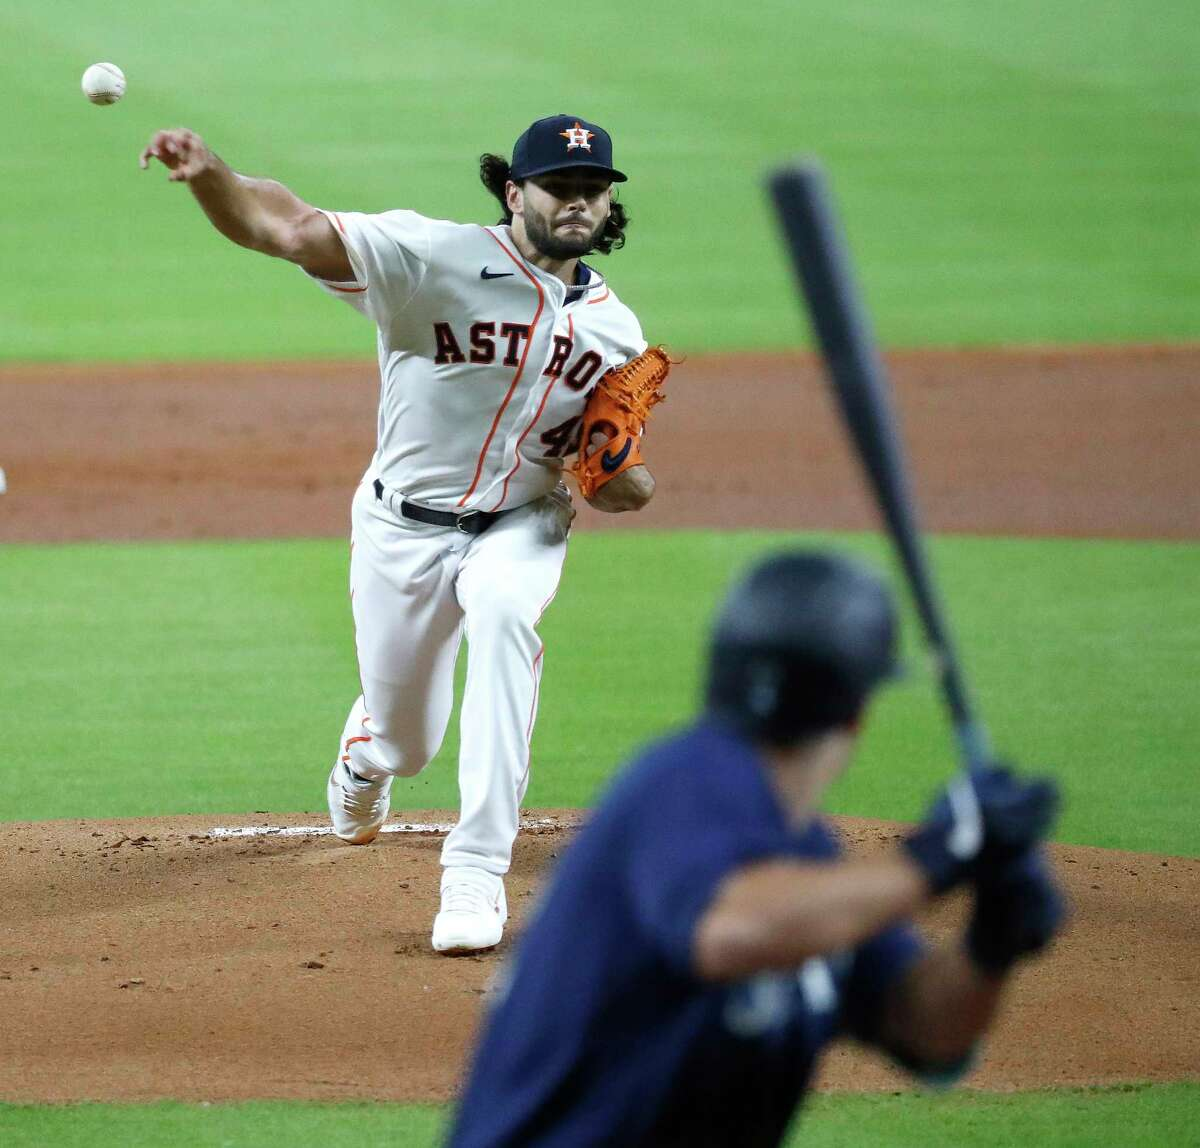 Houston Astros pitcher Lance McCullers Jr. pitches to Seattle Mariners Evan White (12) during the first inning of an MLB baseball game at Minute Maid Park, Saturday, July 25, 2020, in Houston.